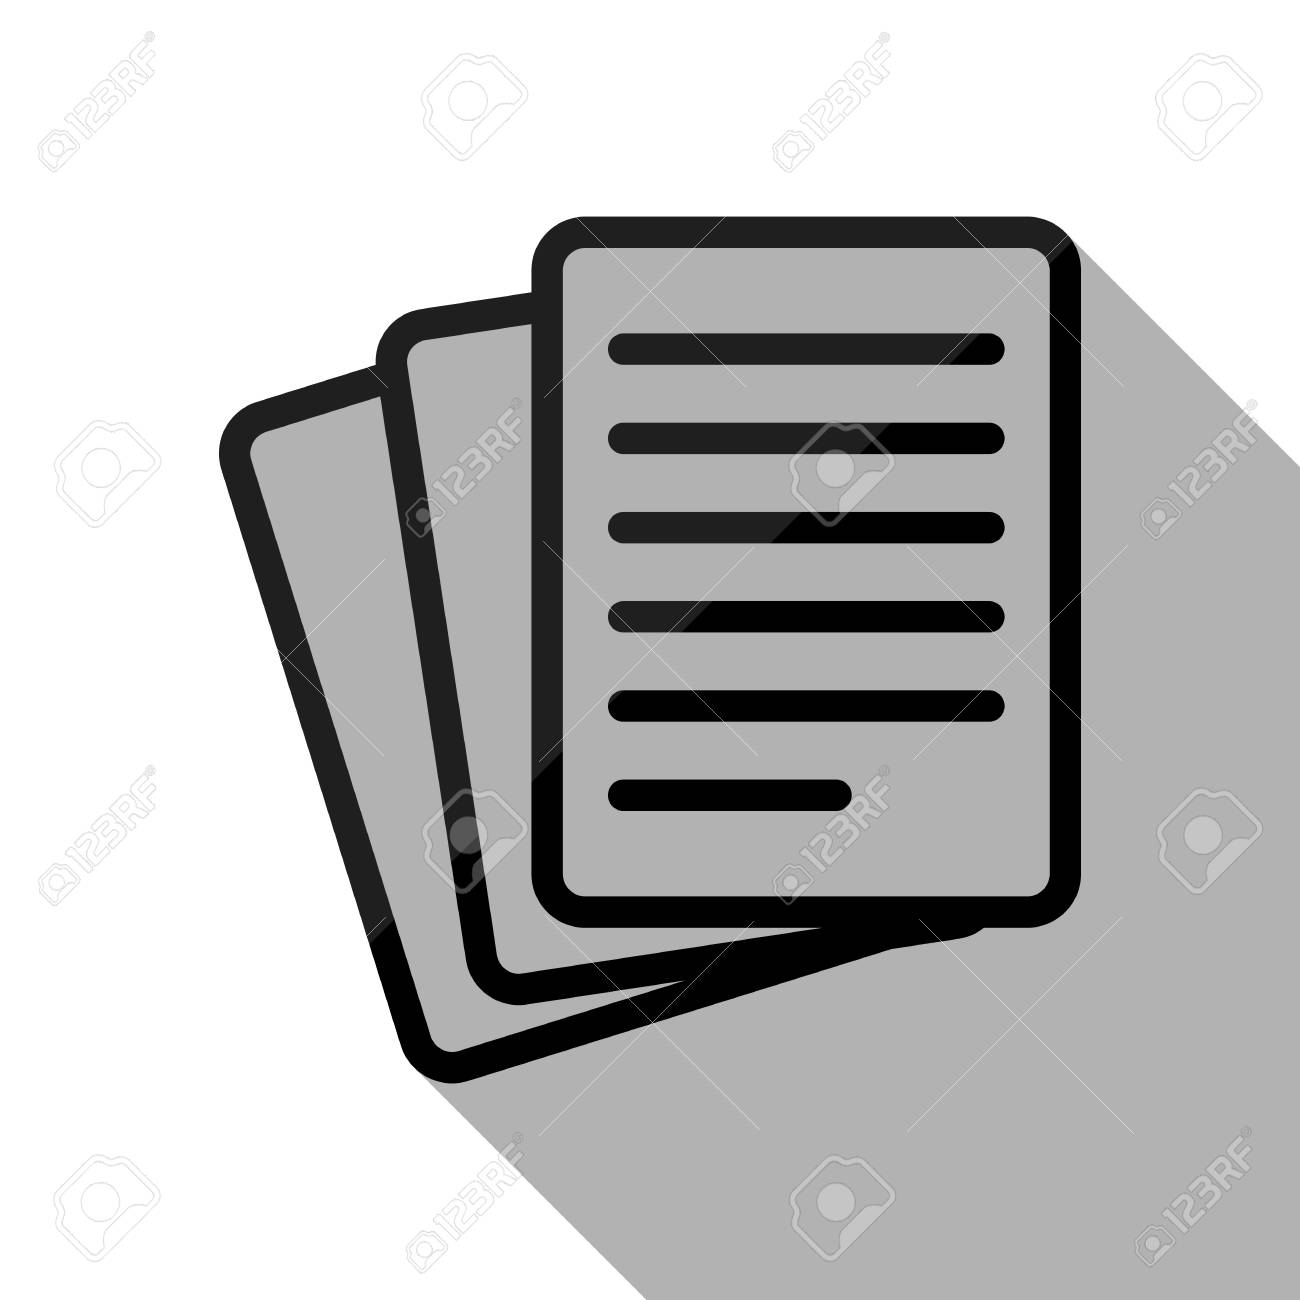 stack of paper icon. black object with long shadow on white